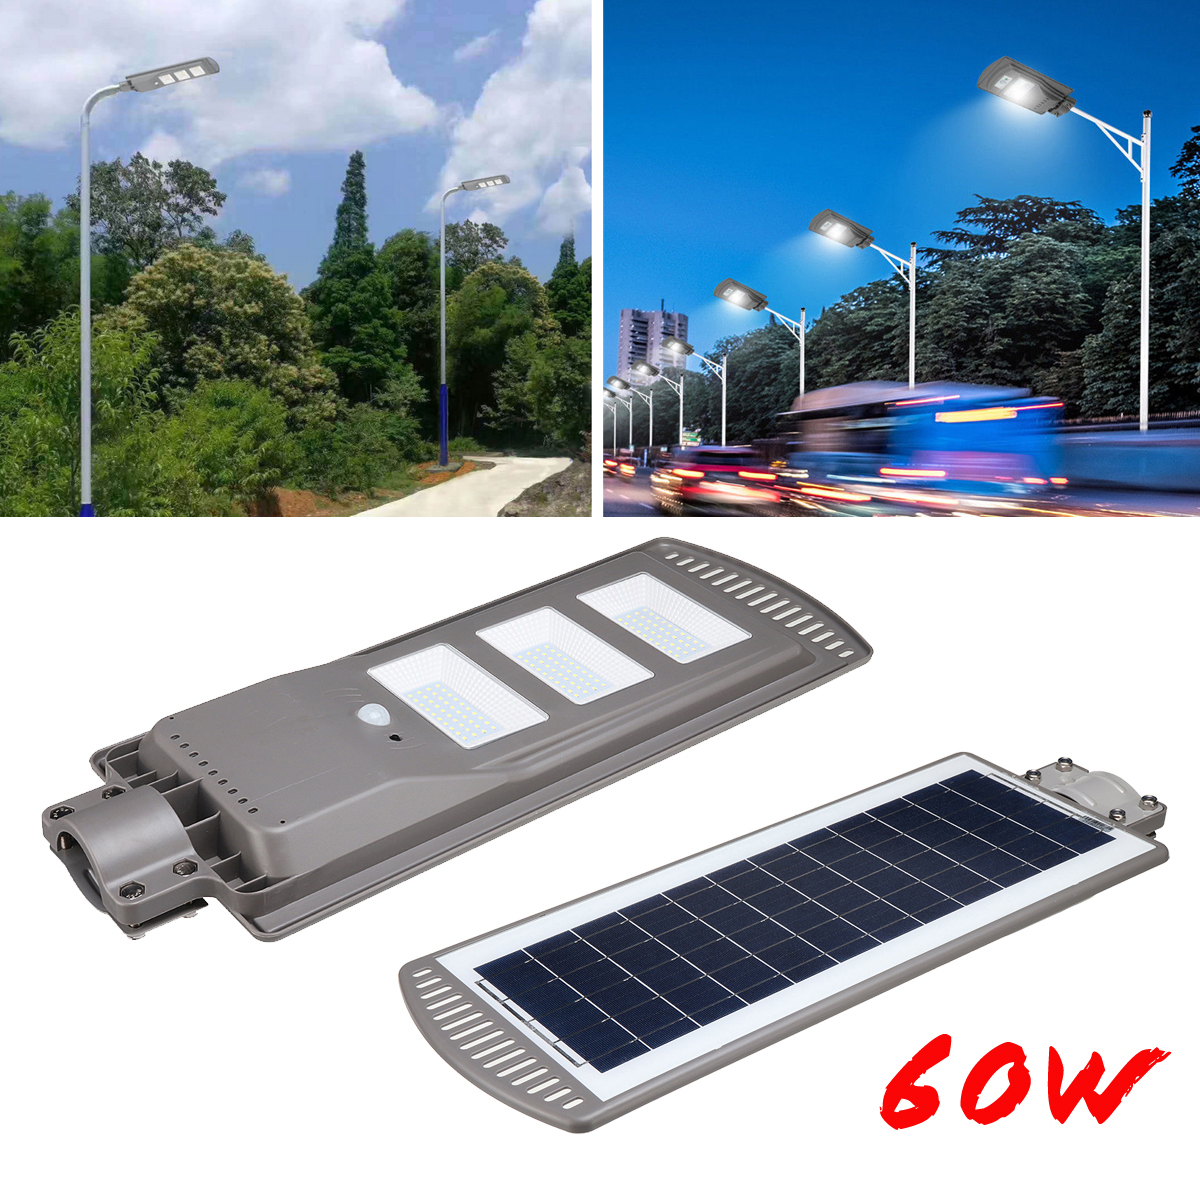 Us 63 05 47 Off 1pc 60w Solar Ed Panel Led Street Light All In 1 Time Switch Waterproof Ip67 Wall Lighting Lamp For Outdoor Garden